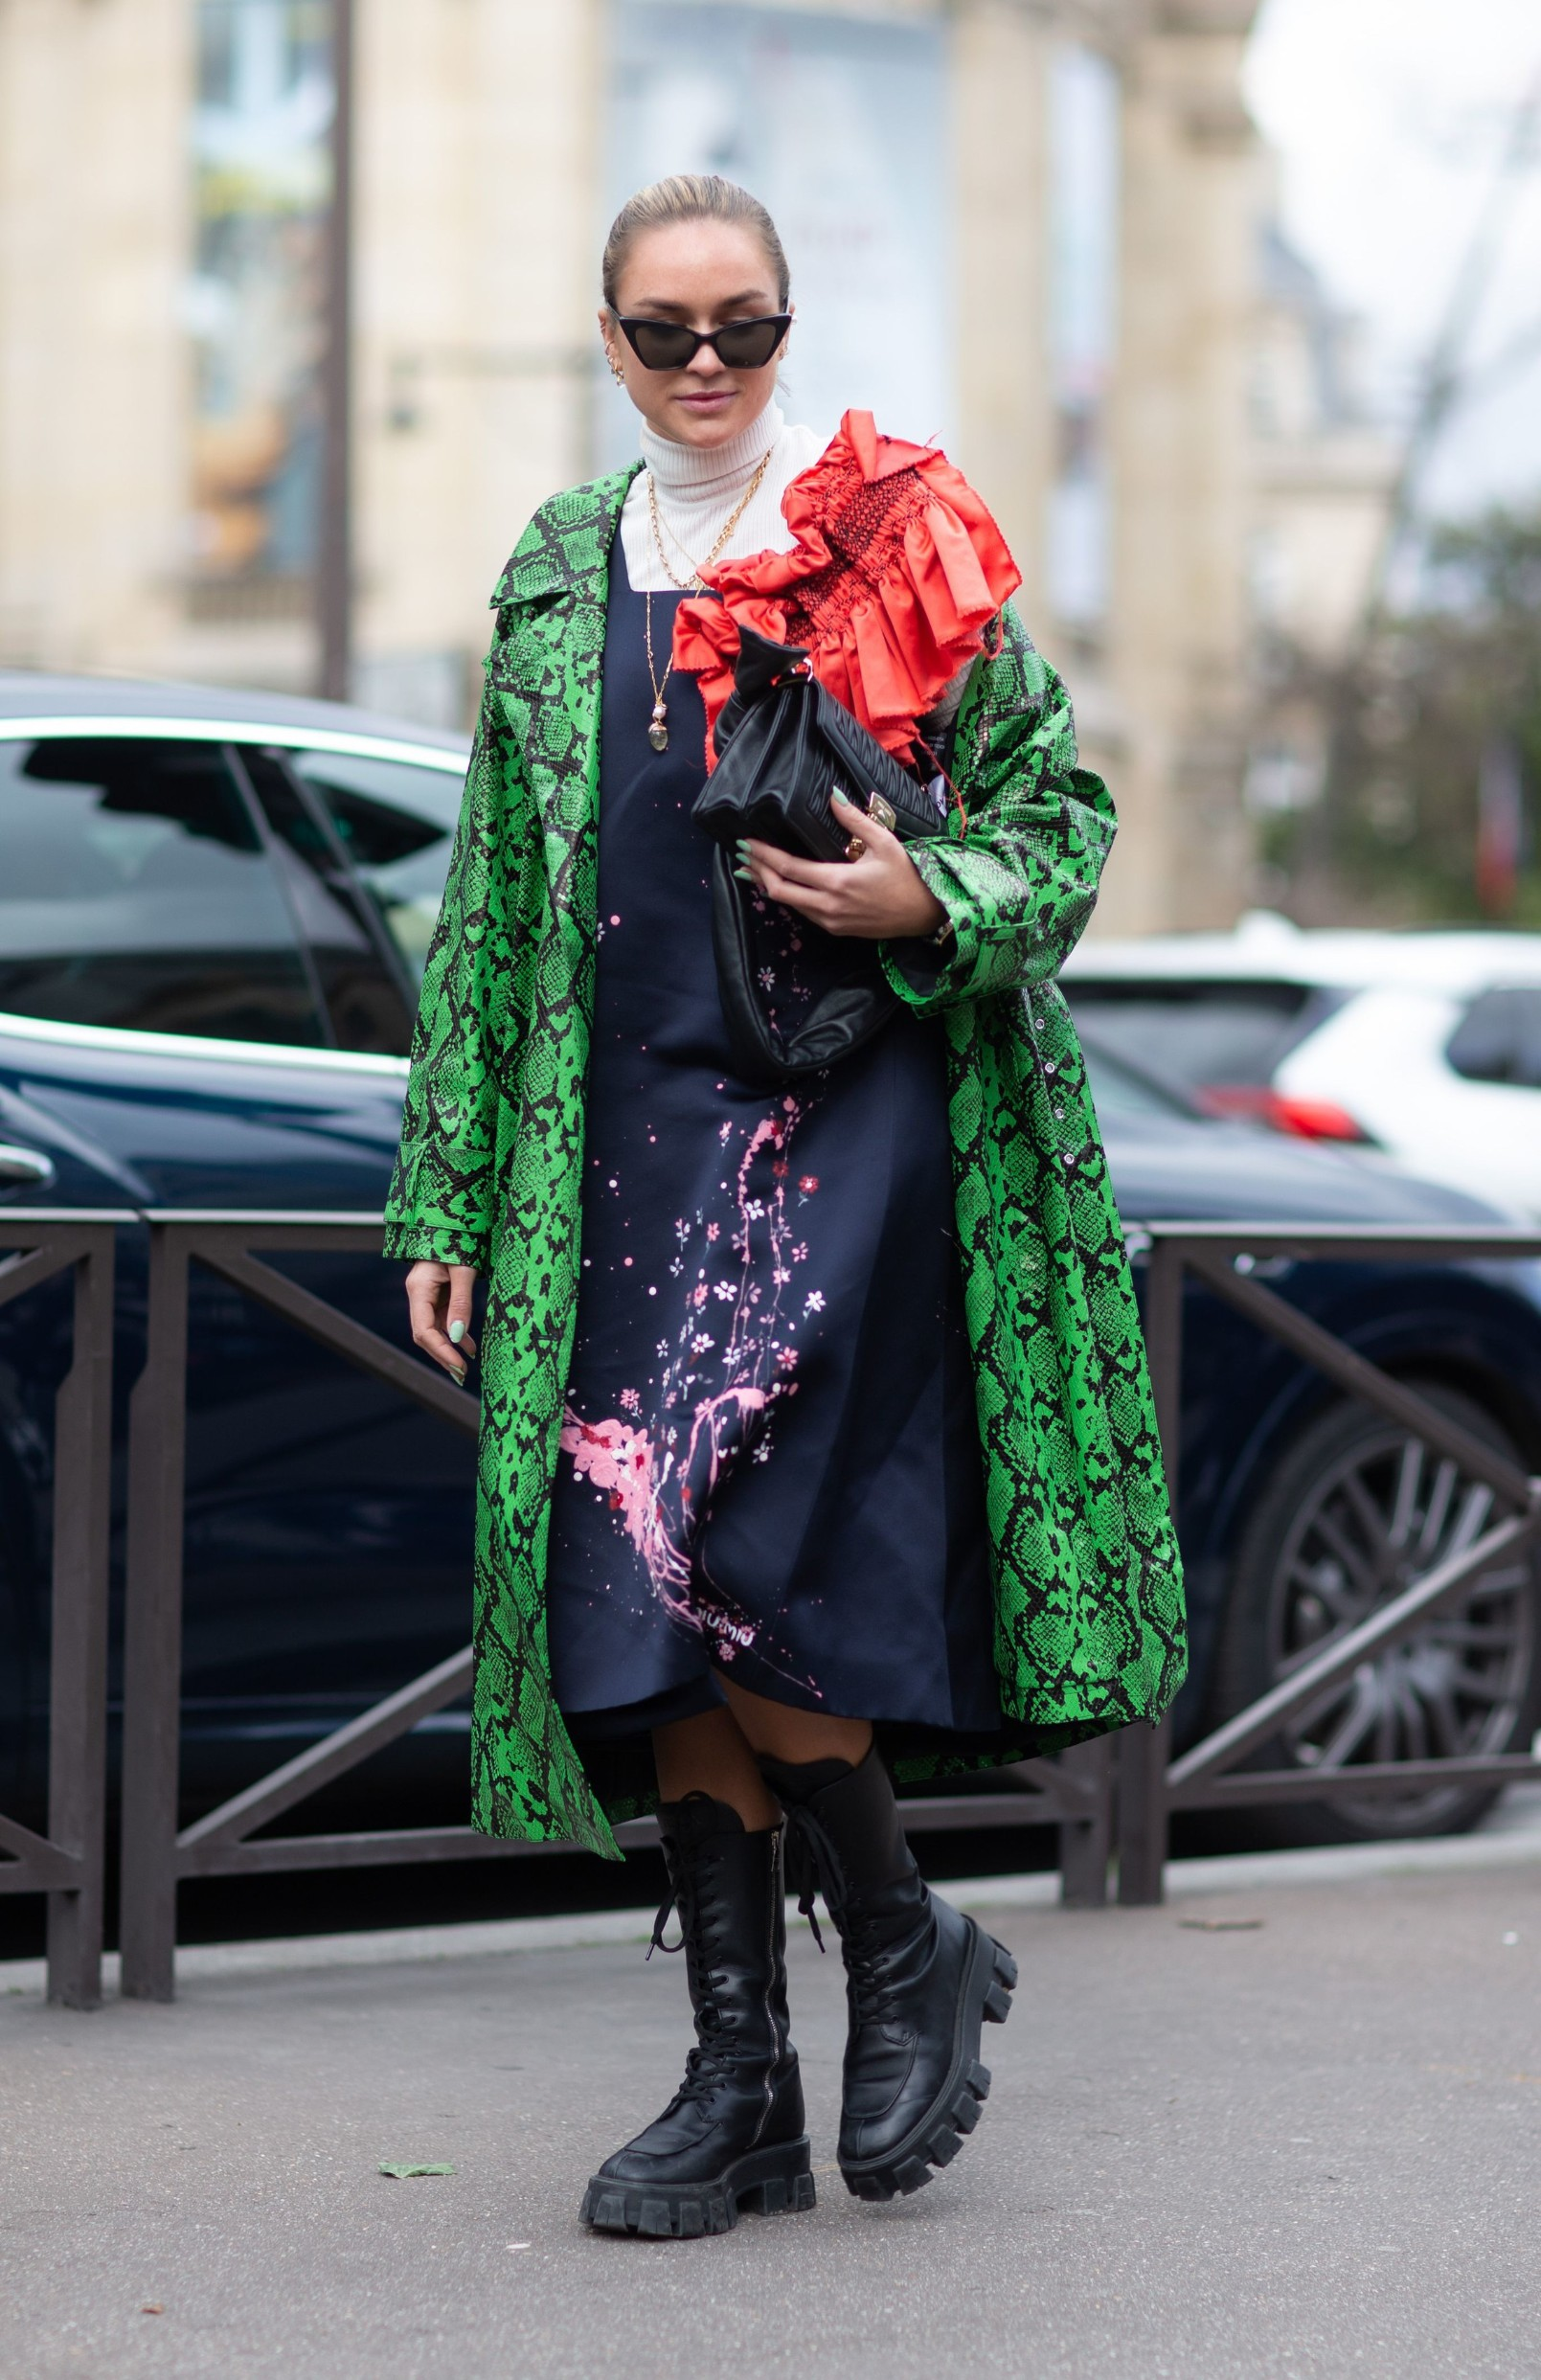 Street Style Street Style, Fall Winter 2020, Paris Fashion Week, France - 03 Mar 2020,Image: 506760126, License: Rights-managed, Restrictions: , Model Release: no, Credit line: Photoeventshd / Shutterstock Editorial / Profimedia